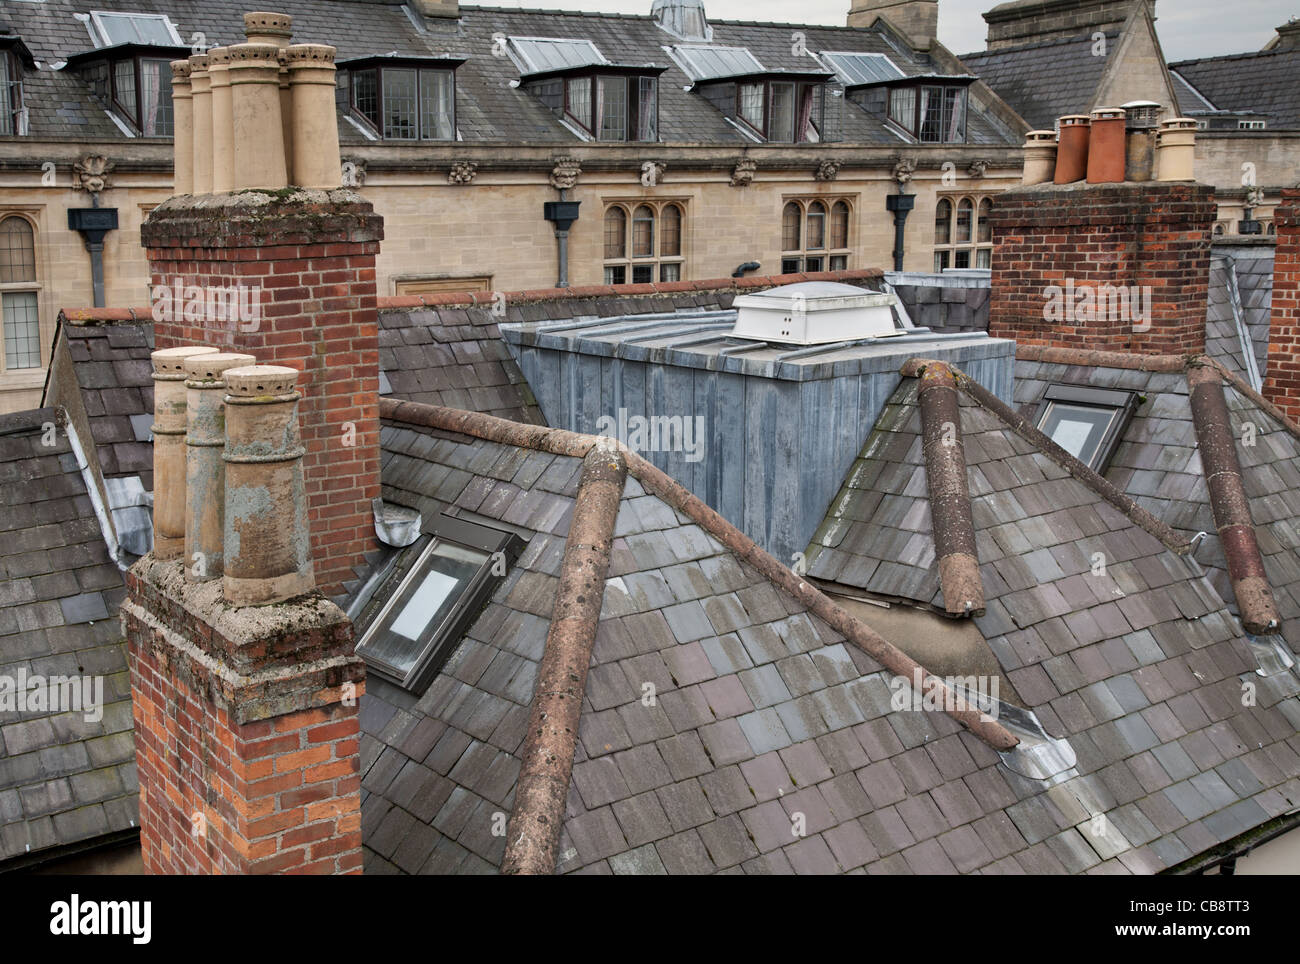 Roof landscape as seen from the Jesus College Oxford, UK - Stock Image